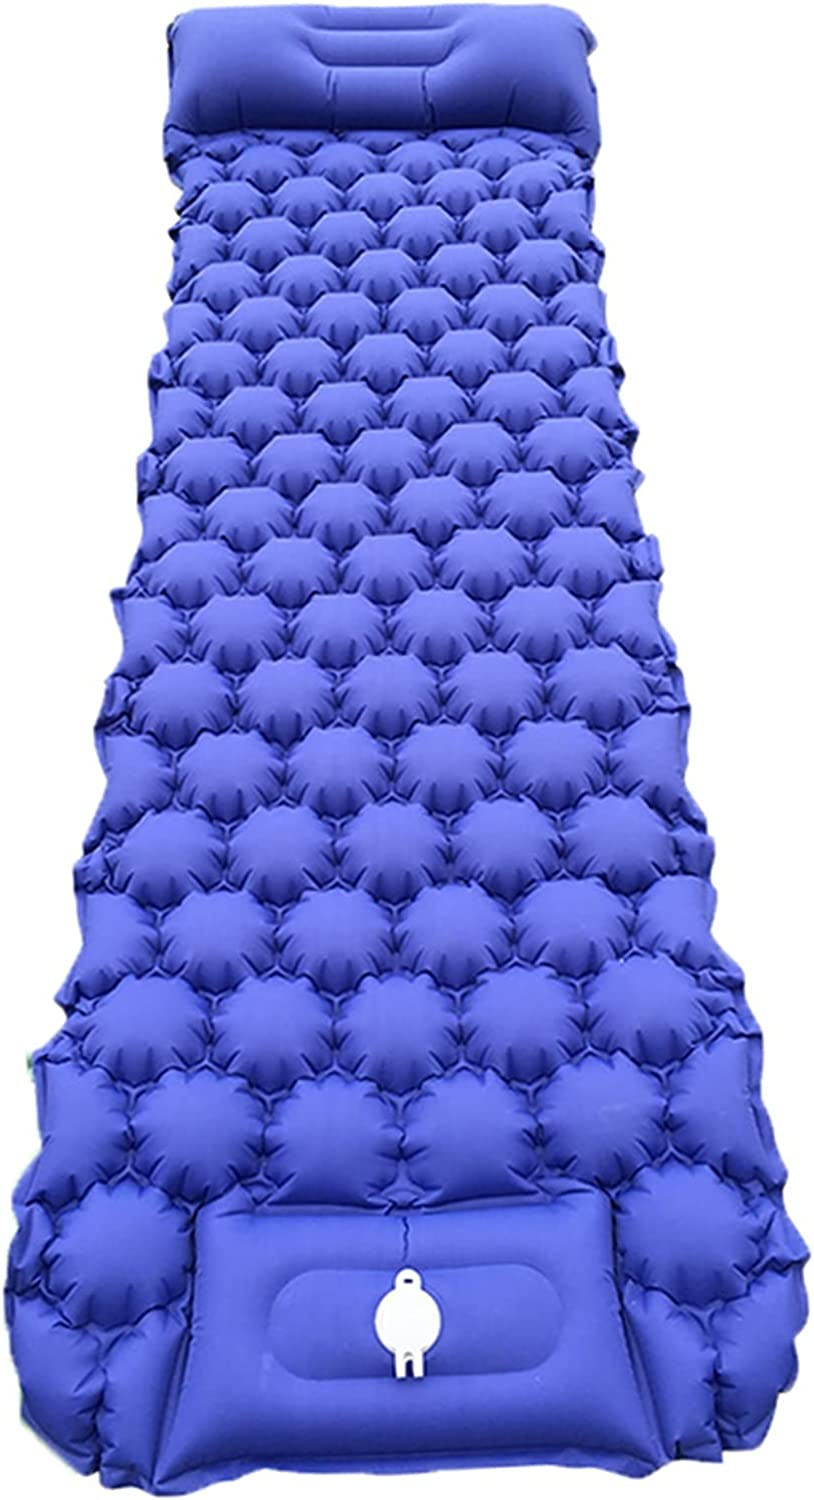 WWPP Camping Dealing full Classic price reduction Sleeping pad Lightweight Most Inflatab Suitable f